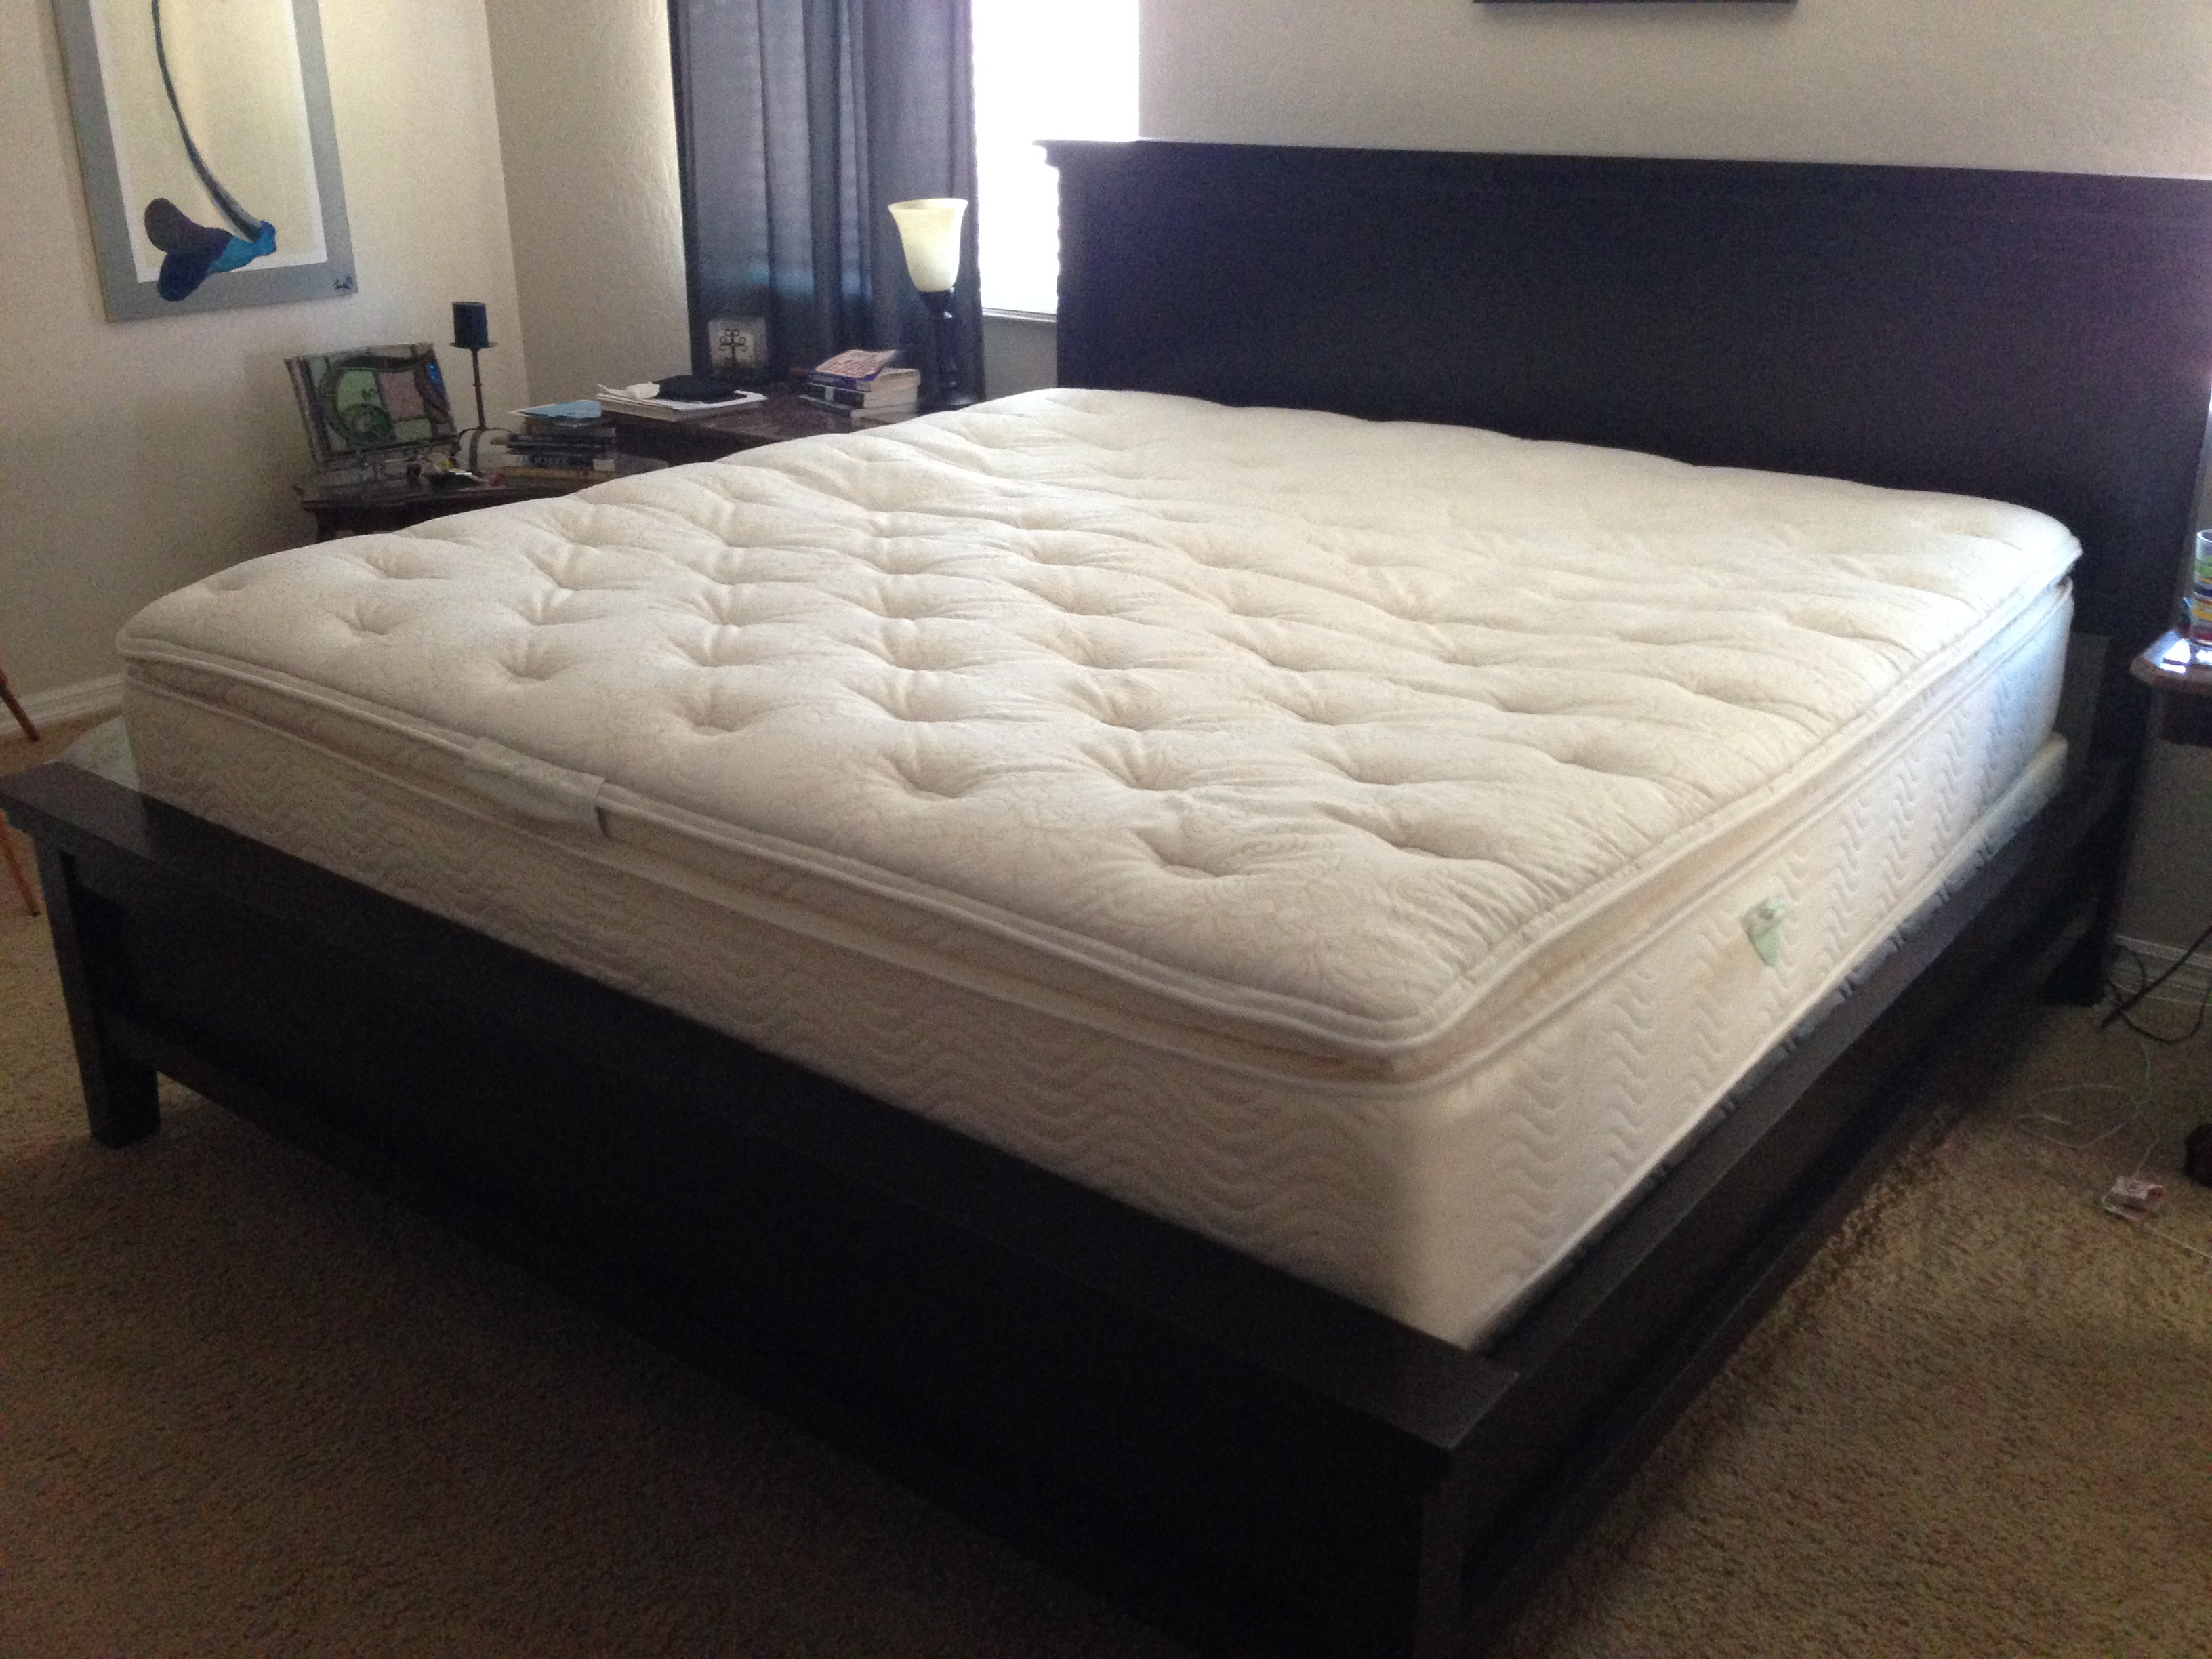 simmons beauty rest spring mattress - Costco Bed Frame